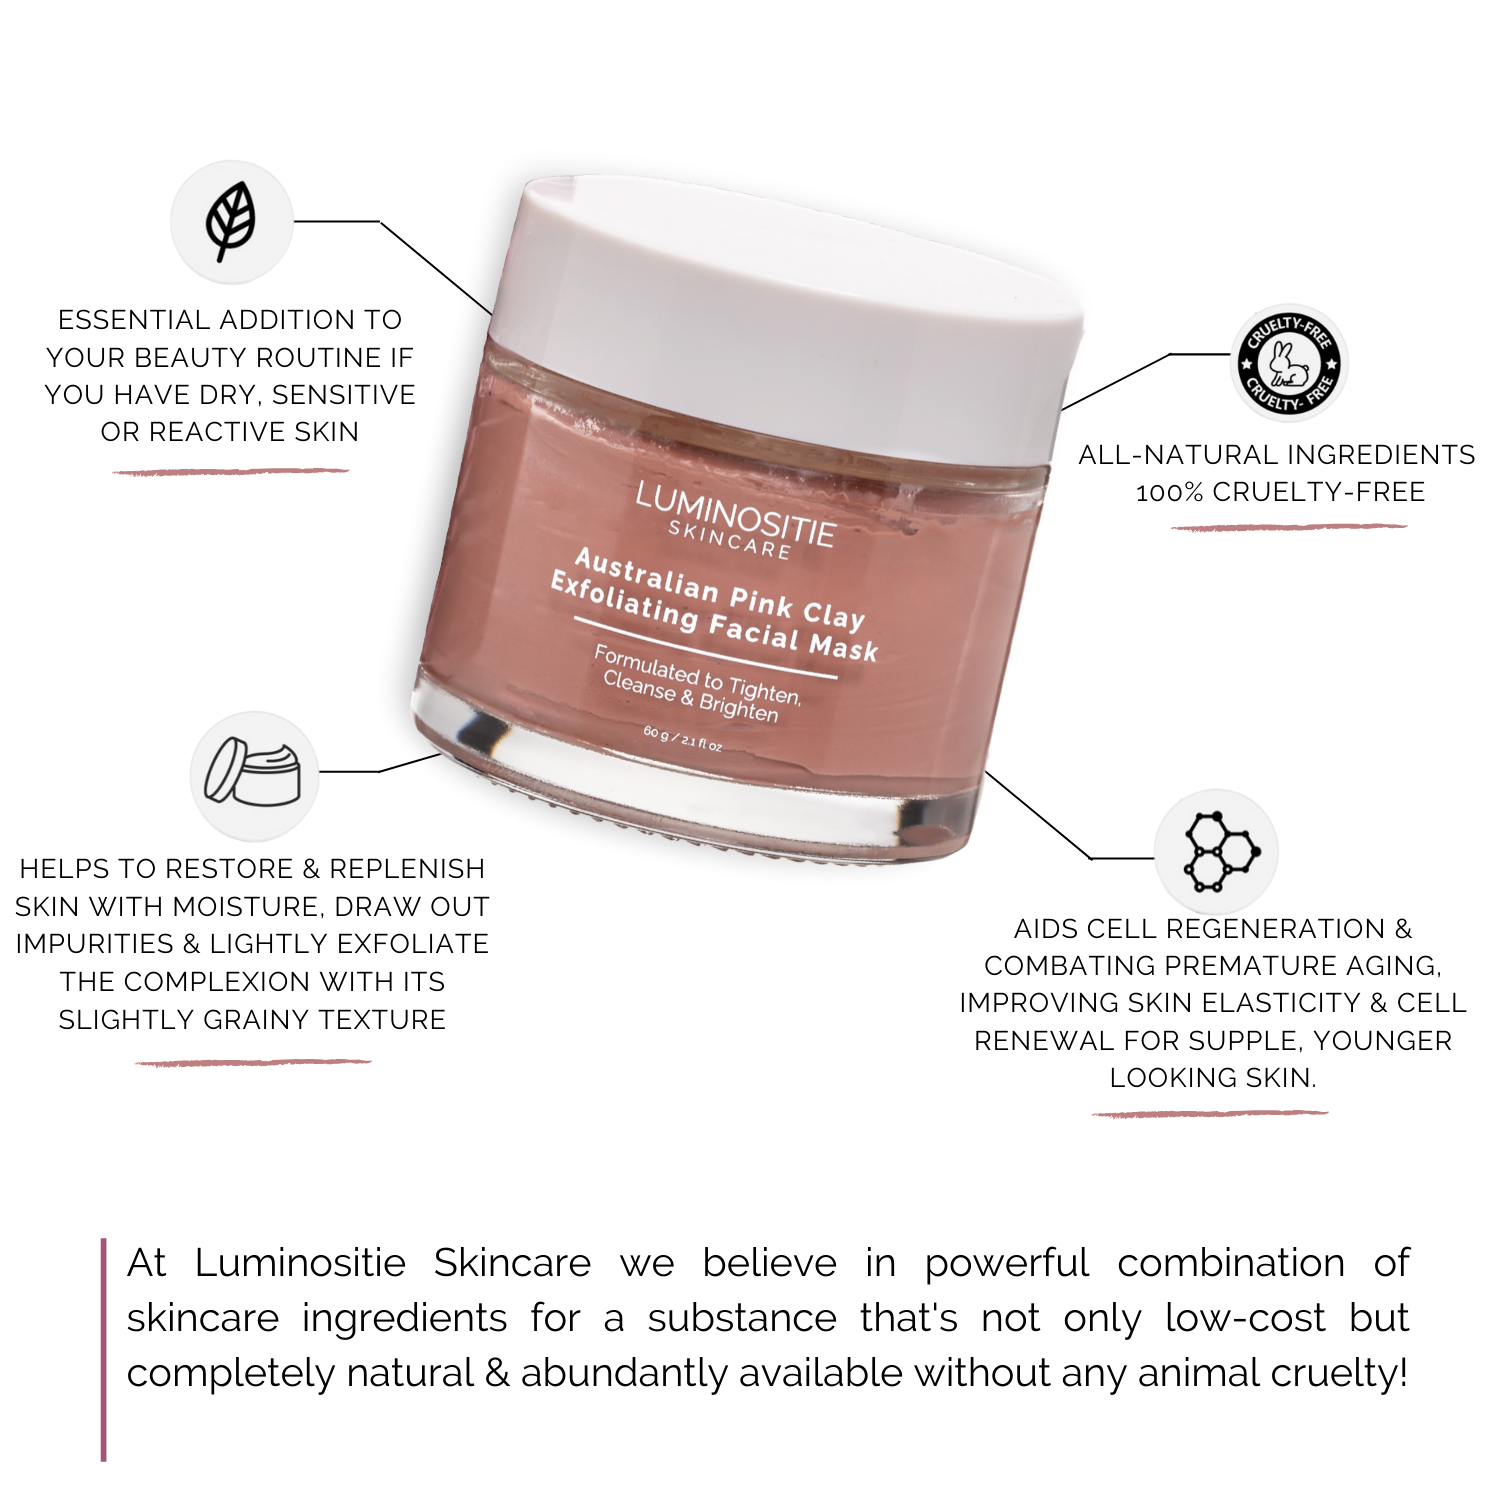 Australian Pink Clay Facial Mask - Luminositie